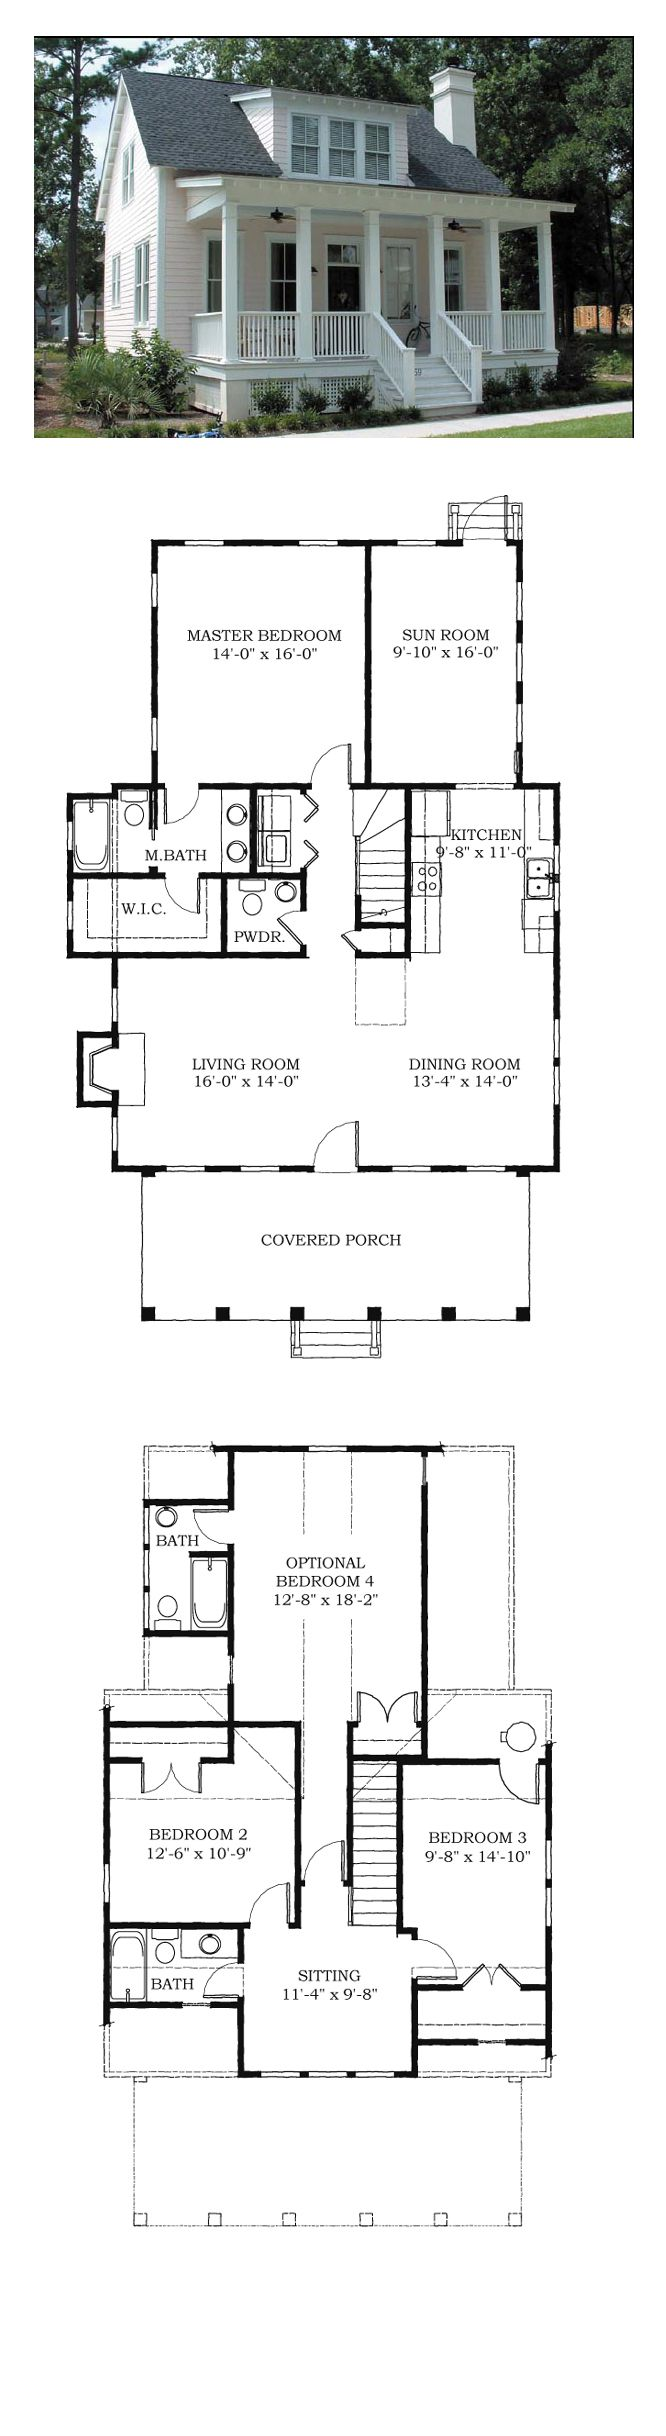 cool house plan id chp 38703 total living area 1783 sq - Tiny House Layout Ideas